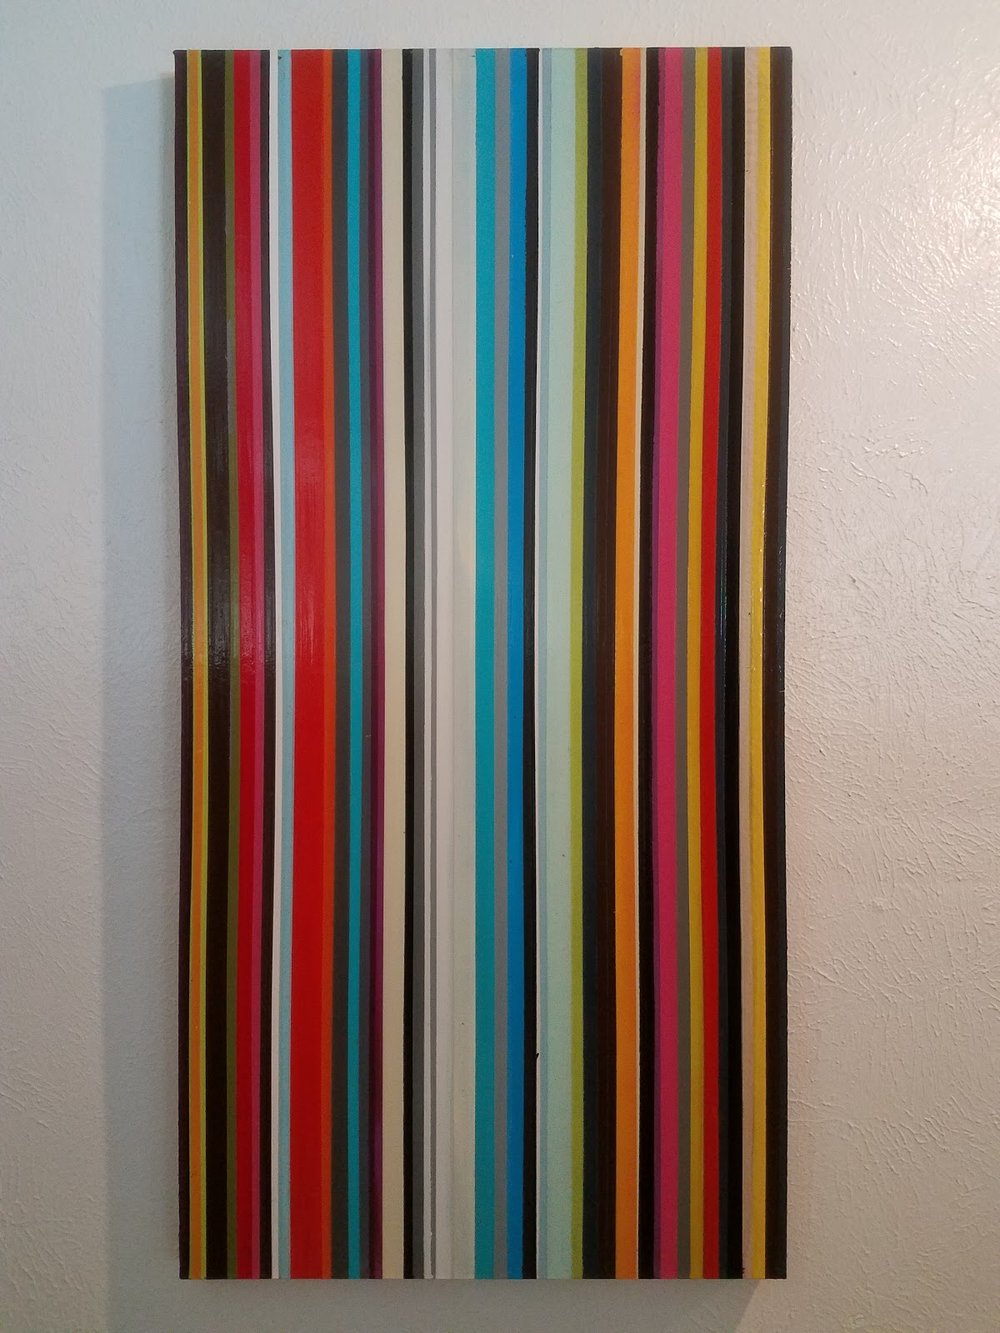 "Spectrus-48""H x 24""W  Media: enamel, latex, mixed on board"